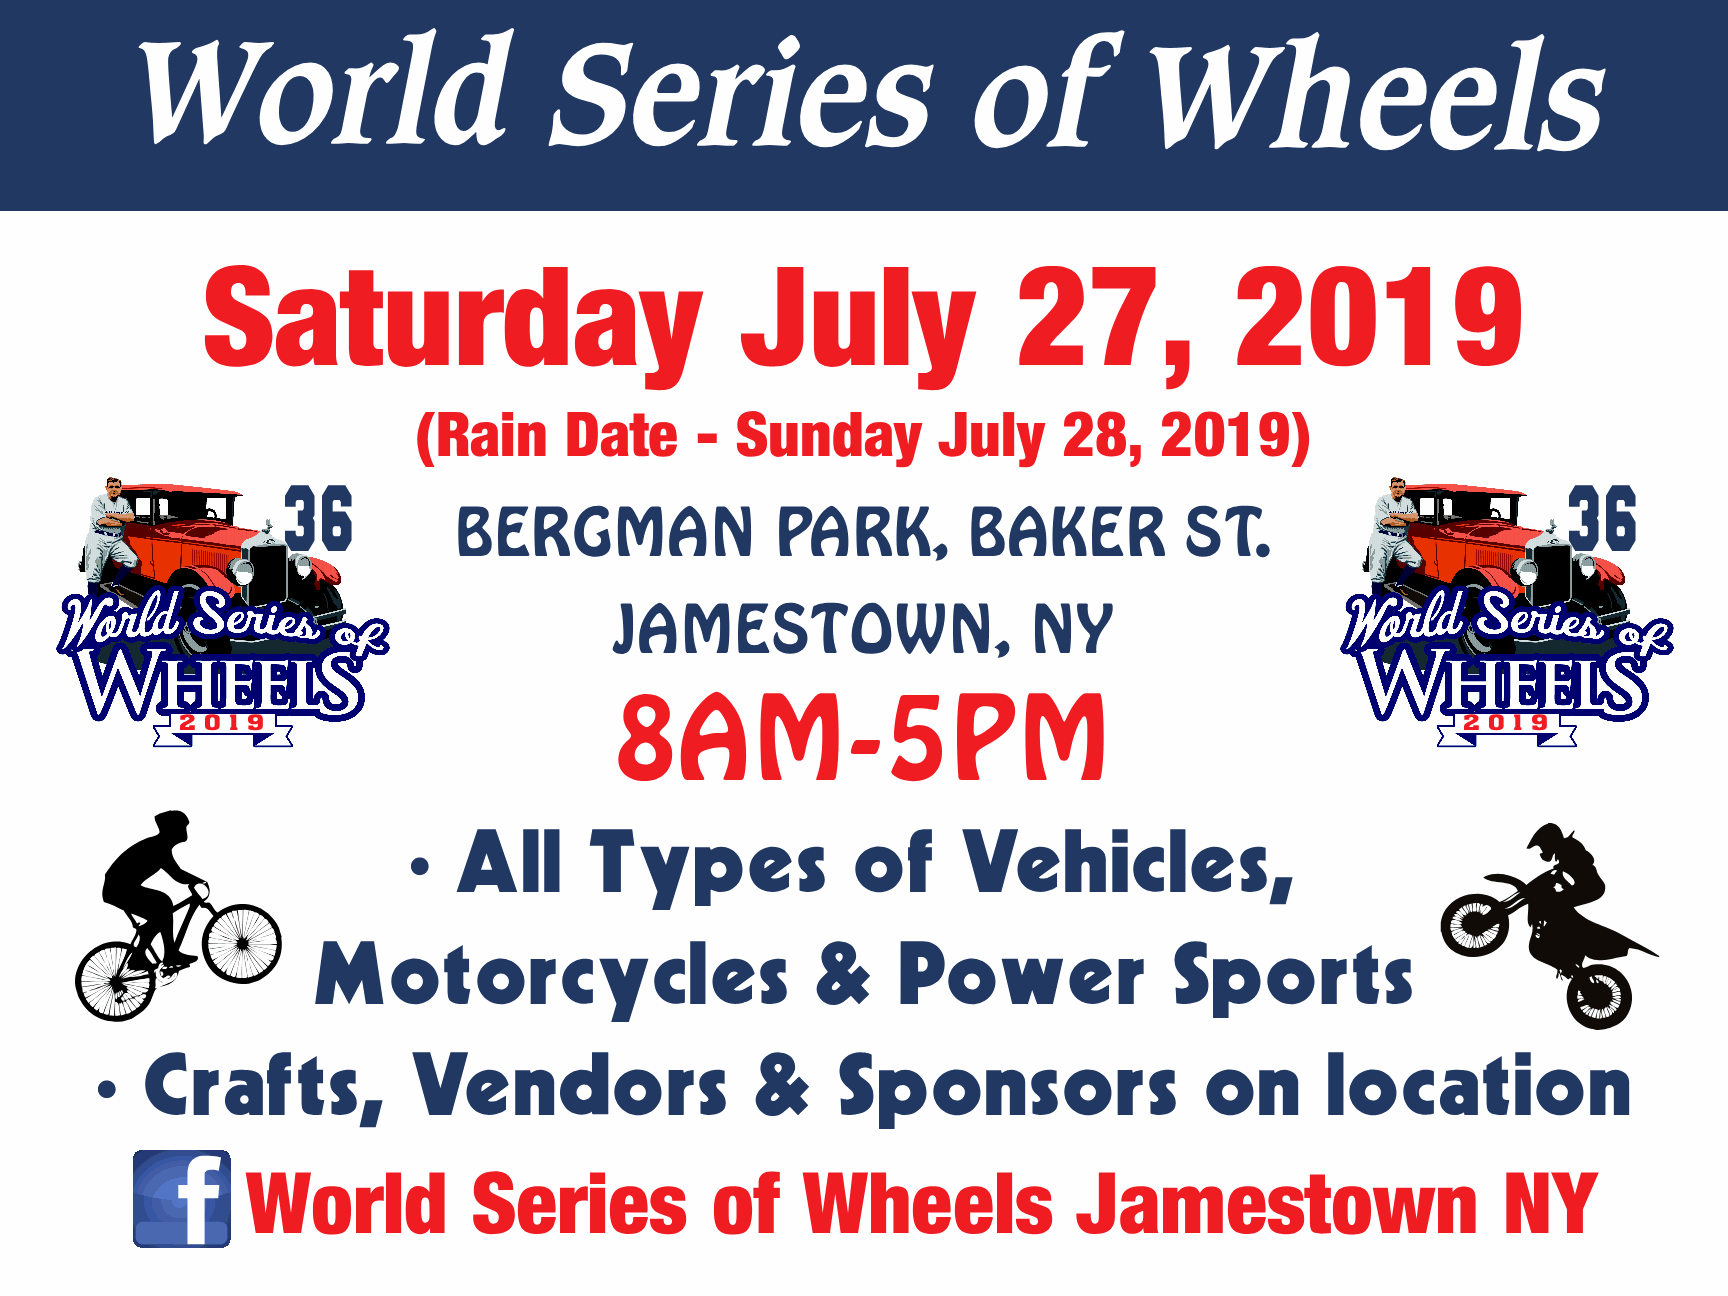 World Series of Wheels - Jamestown Babe Ruth World Series